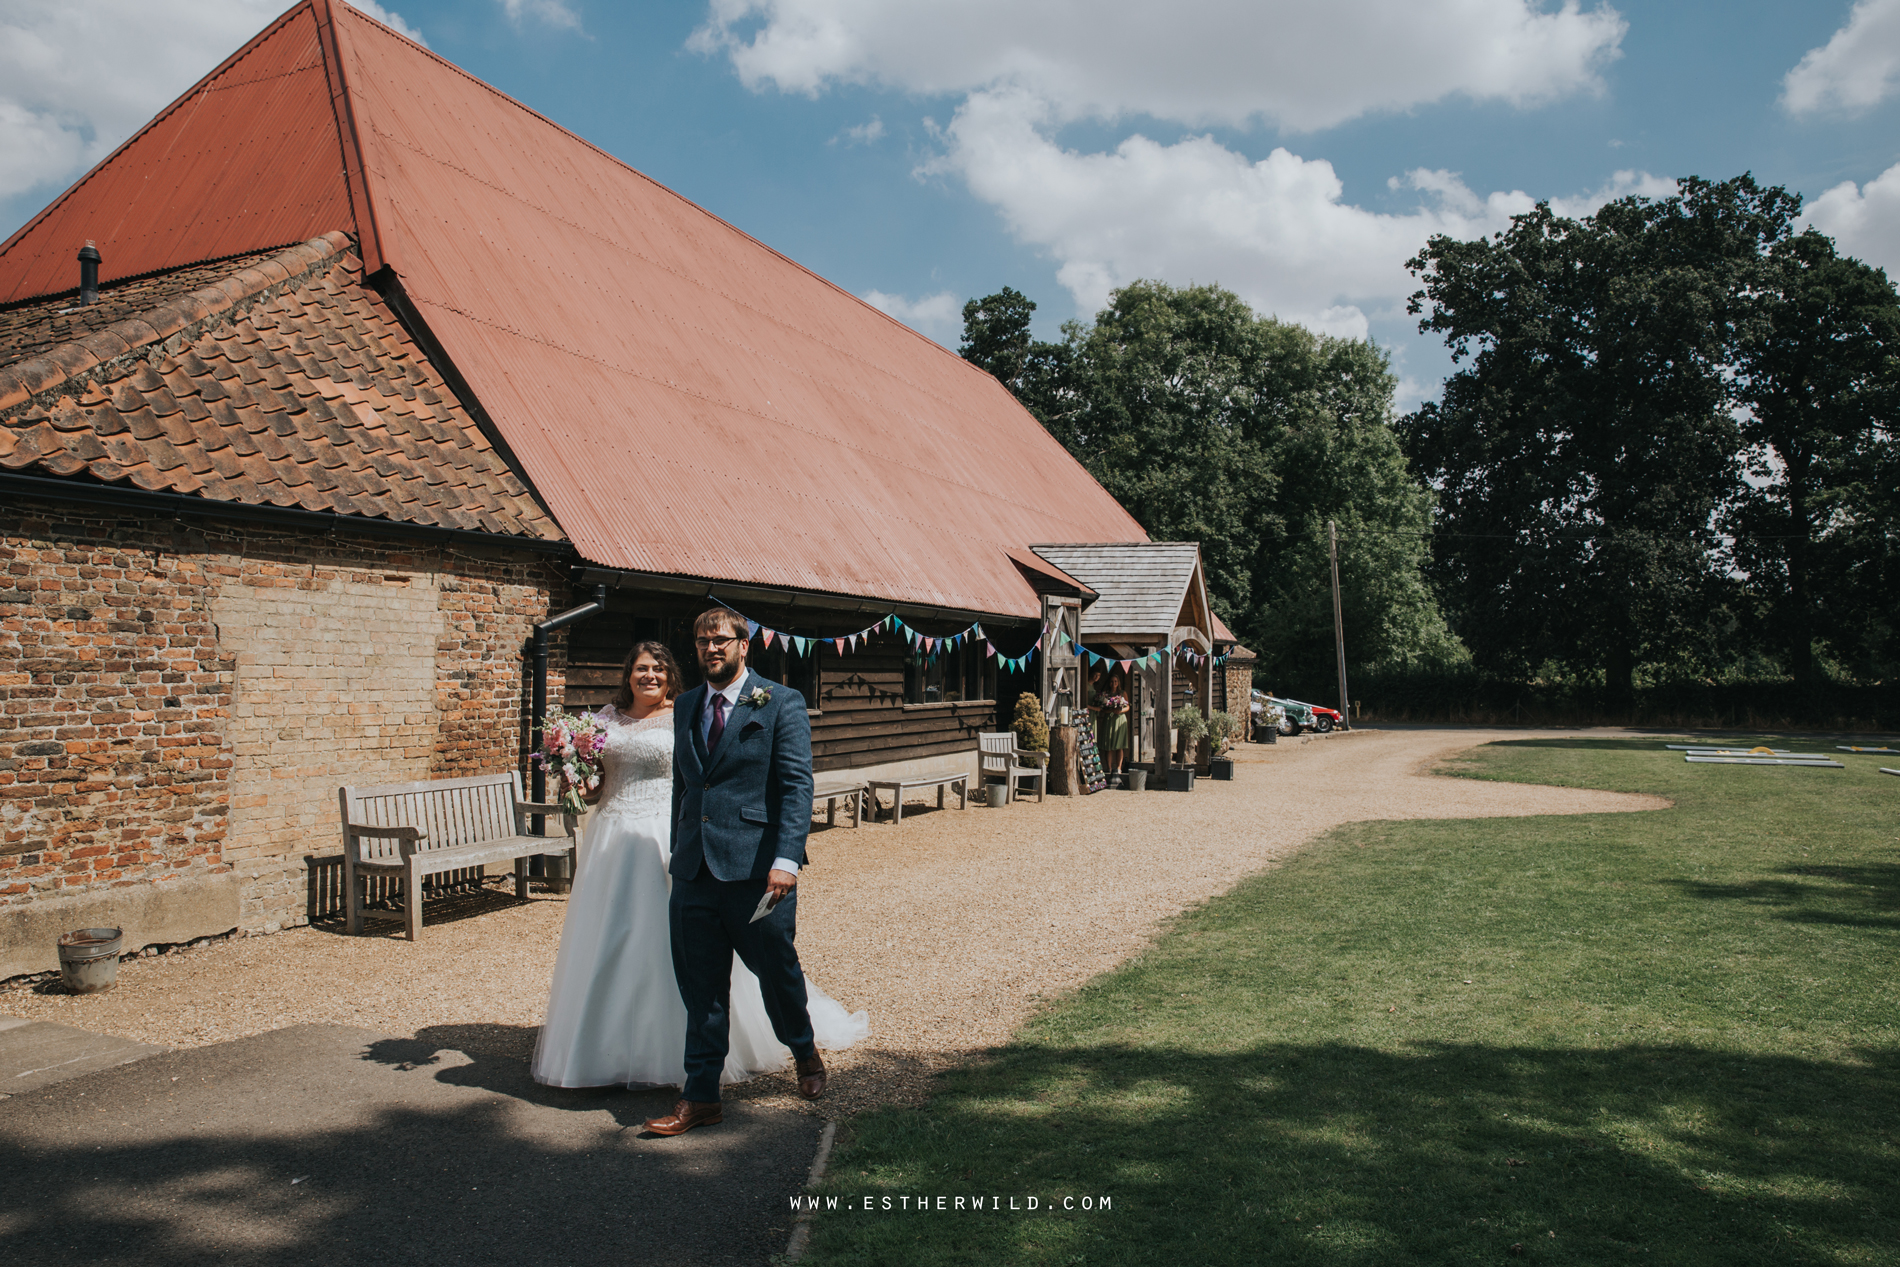 The_Red_Barn_Wedding_Kings_Lynn_Norfolk_IMG_1028.jpg